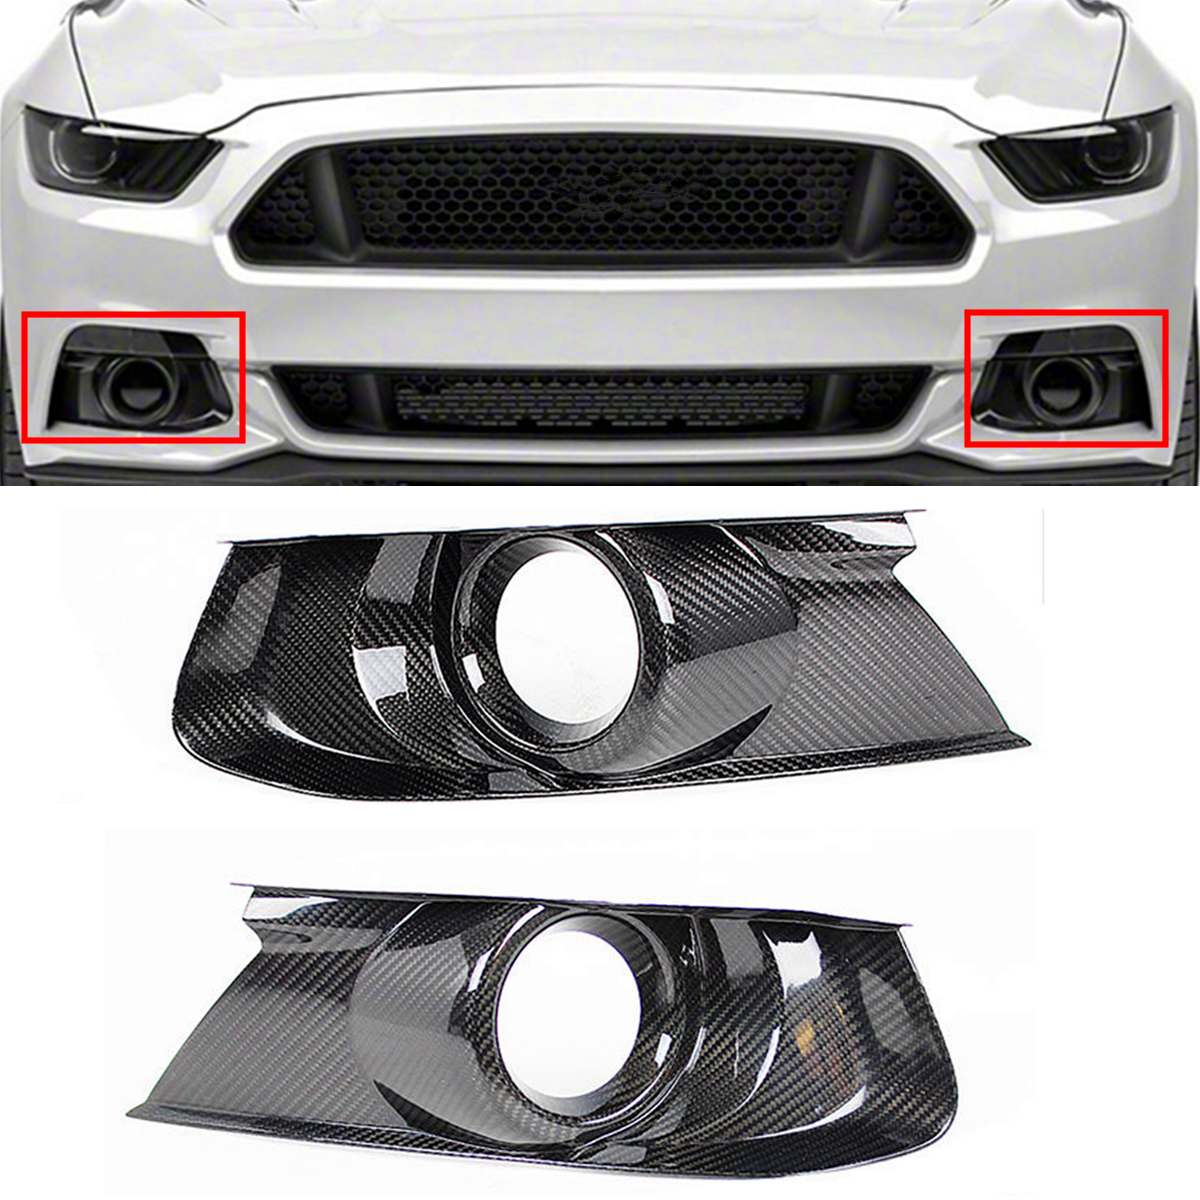 High quality 1Pair Carbon Fiber Front Bumper Fog Light Bezel Cover Trim Mesh Grille For Mustang GT 2015-2017 New Fog Light Cover ownsun innovative super cob fog light angel eye bumper cover for skoda fabia scout